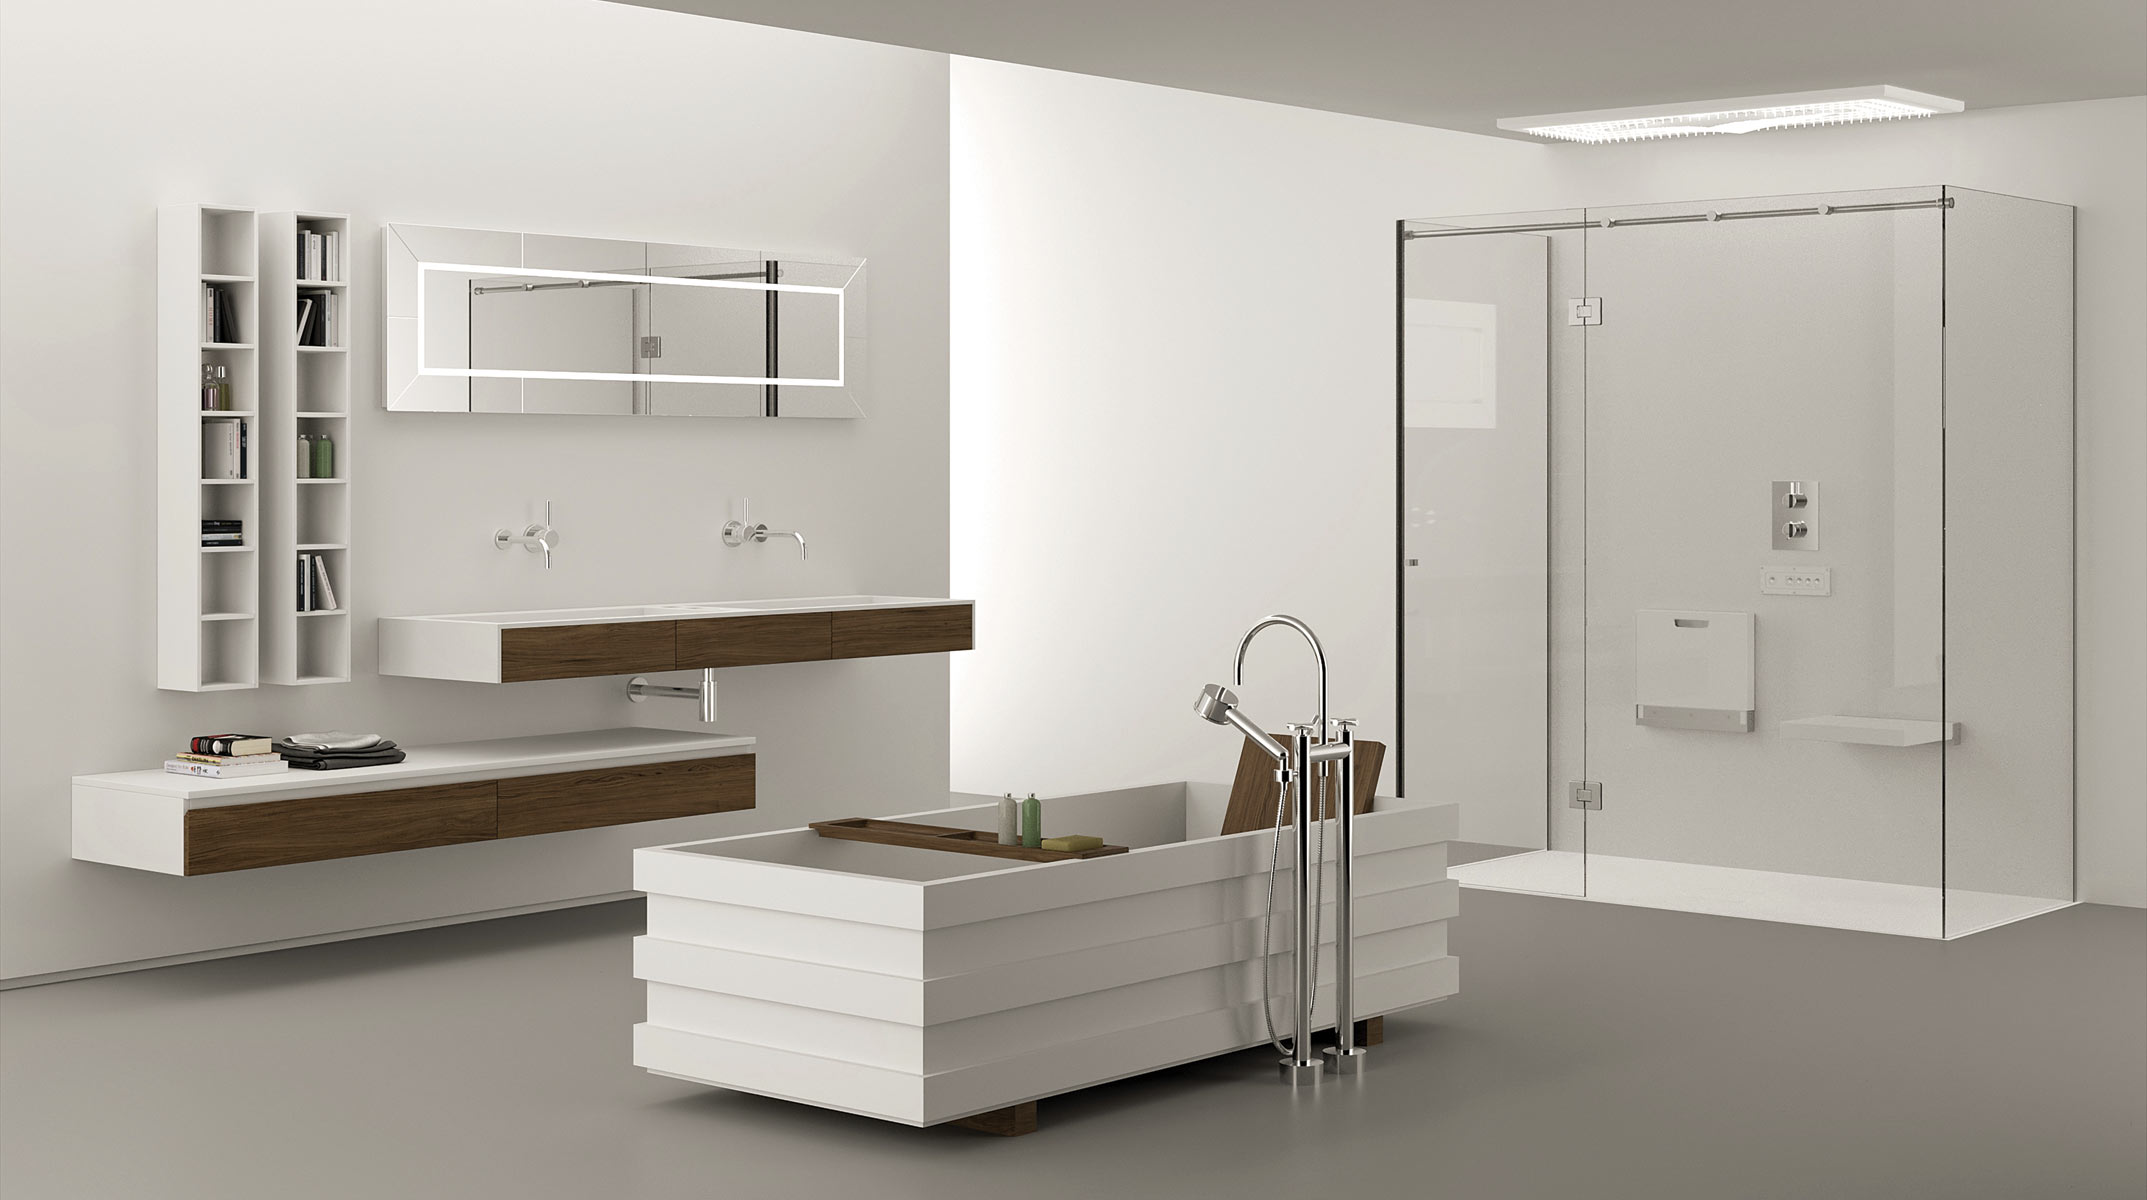 Bathroom furniture and moma design fireplaces - Accessori da bagno di lusso ...